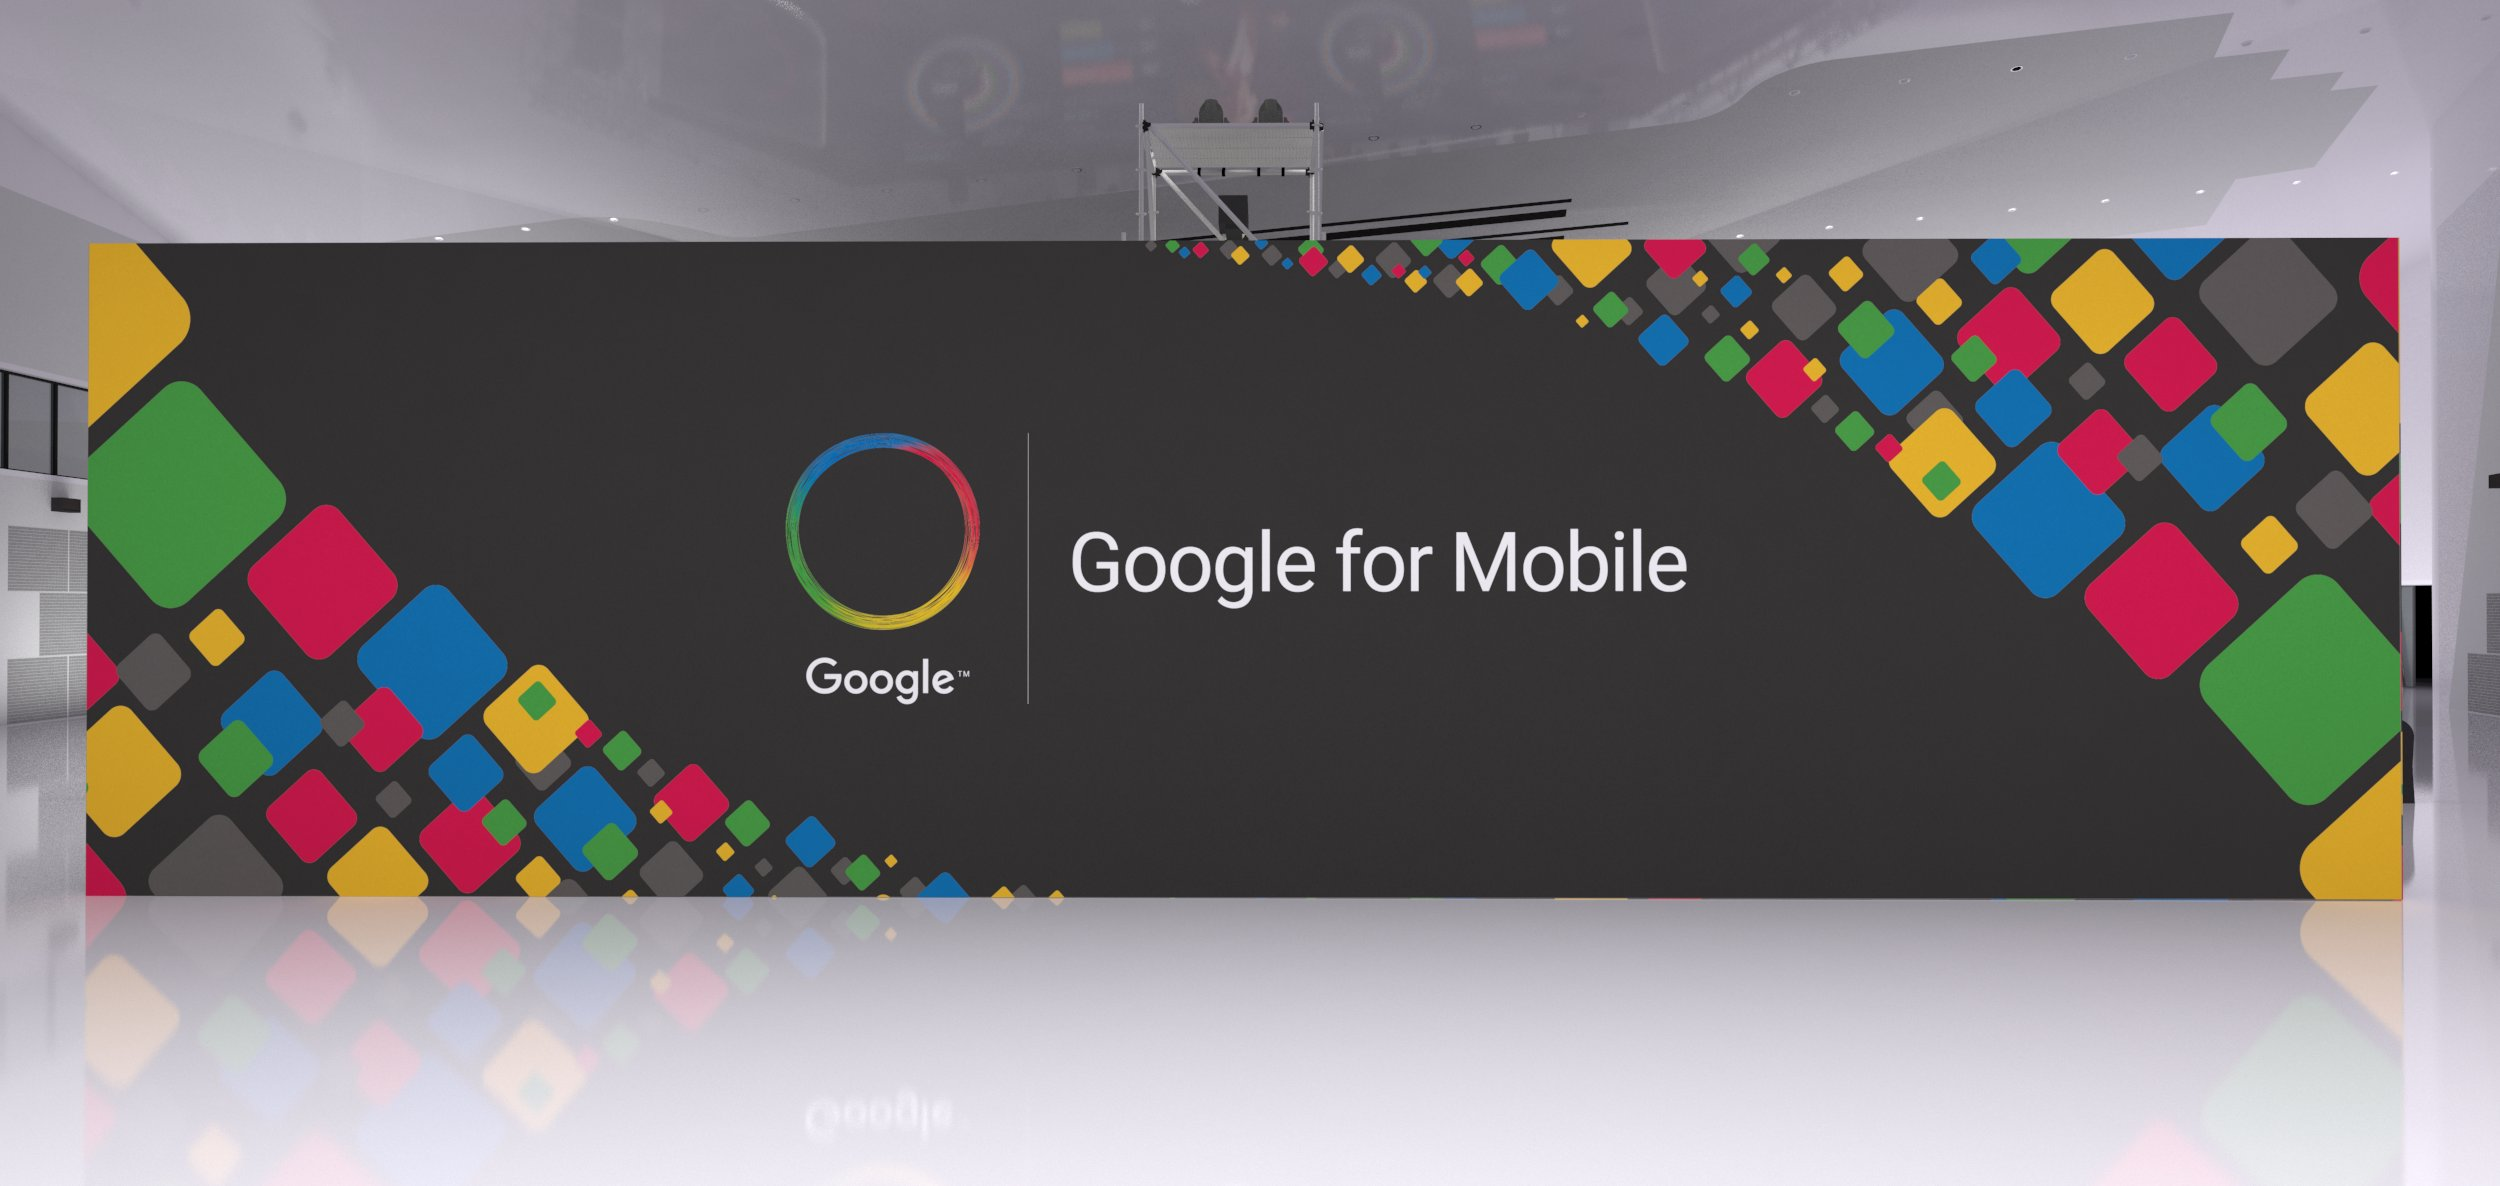 Google for mobile 2016_@DDP_31